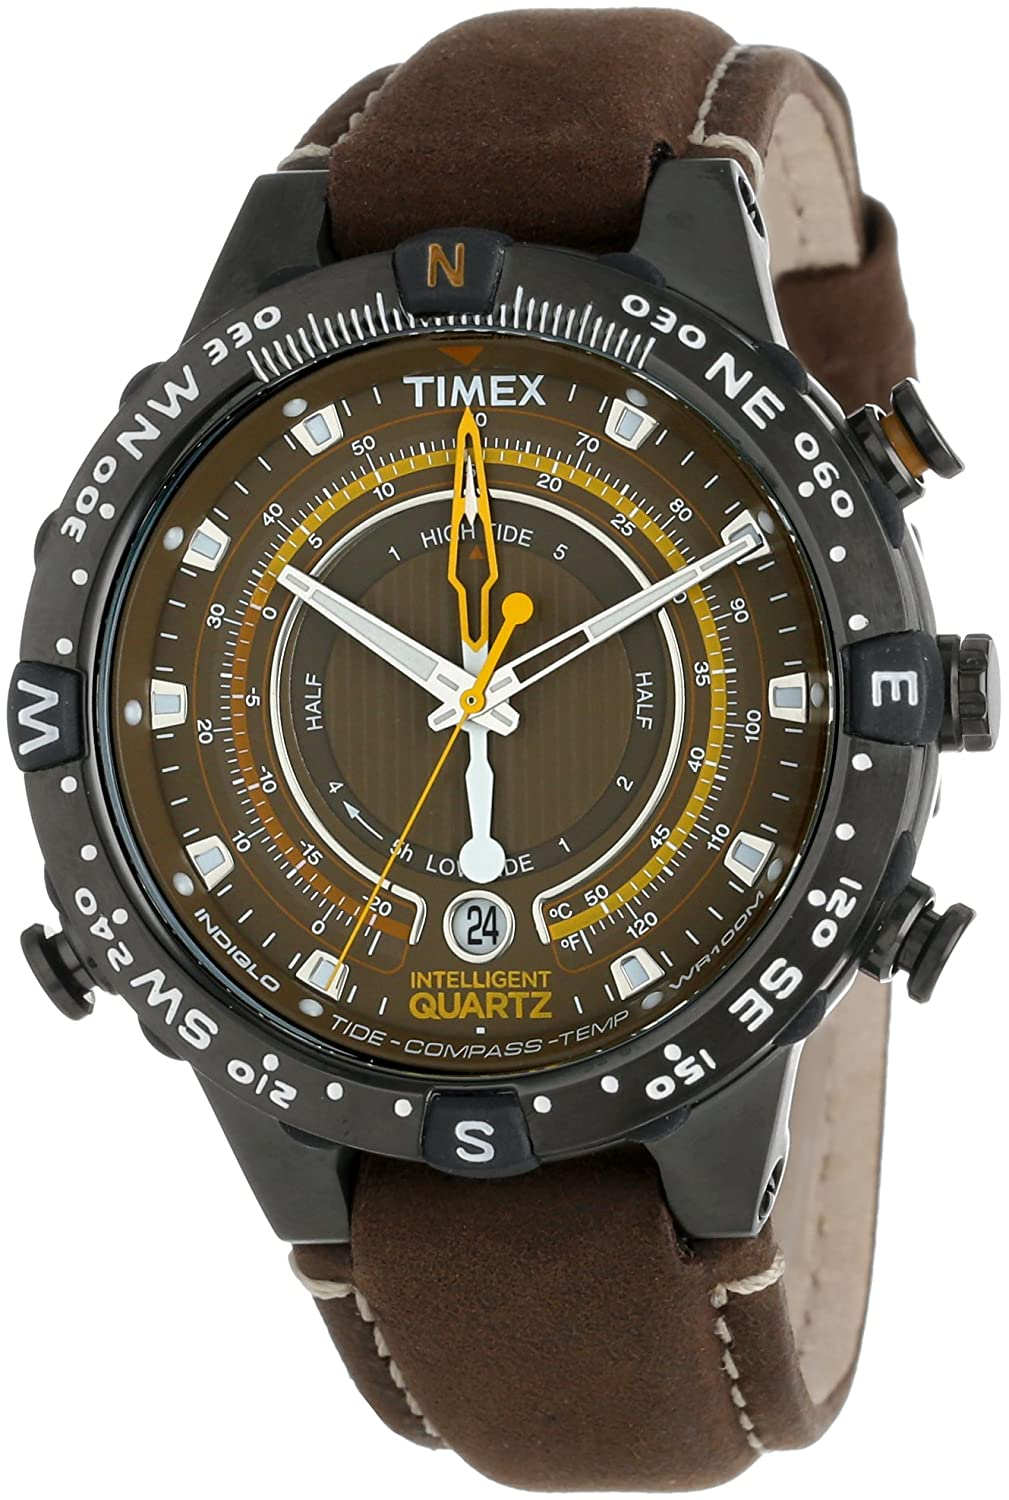 Top 10 best timex dress watches for men reviews 2019 2020 on flipboard by mariah lolas for Adventure watches